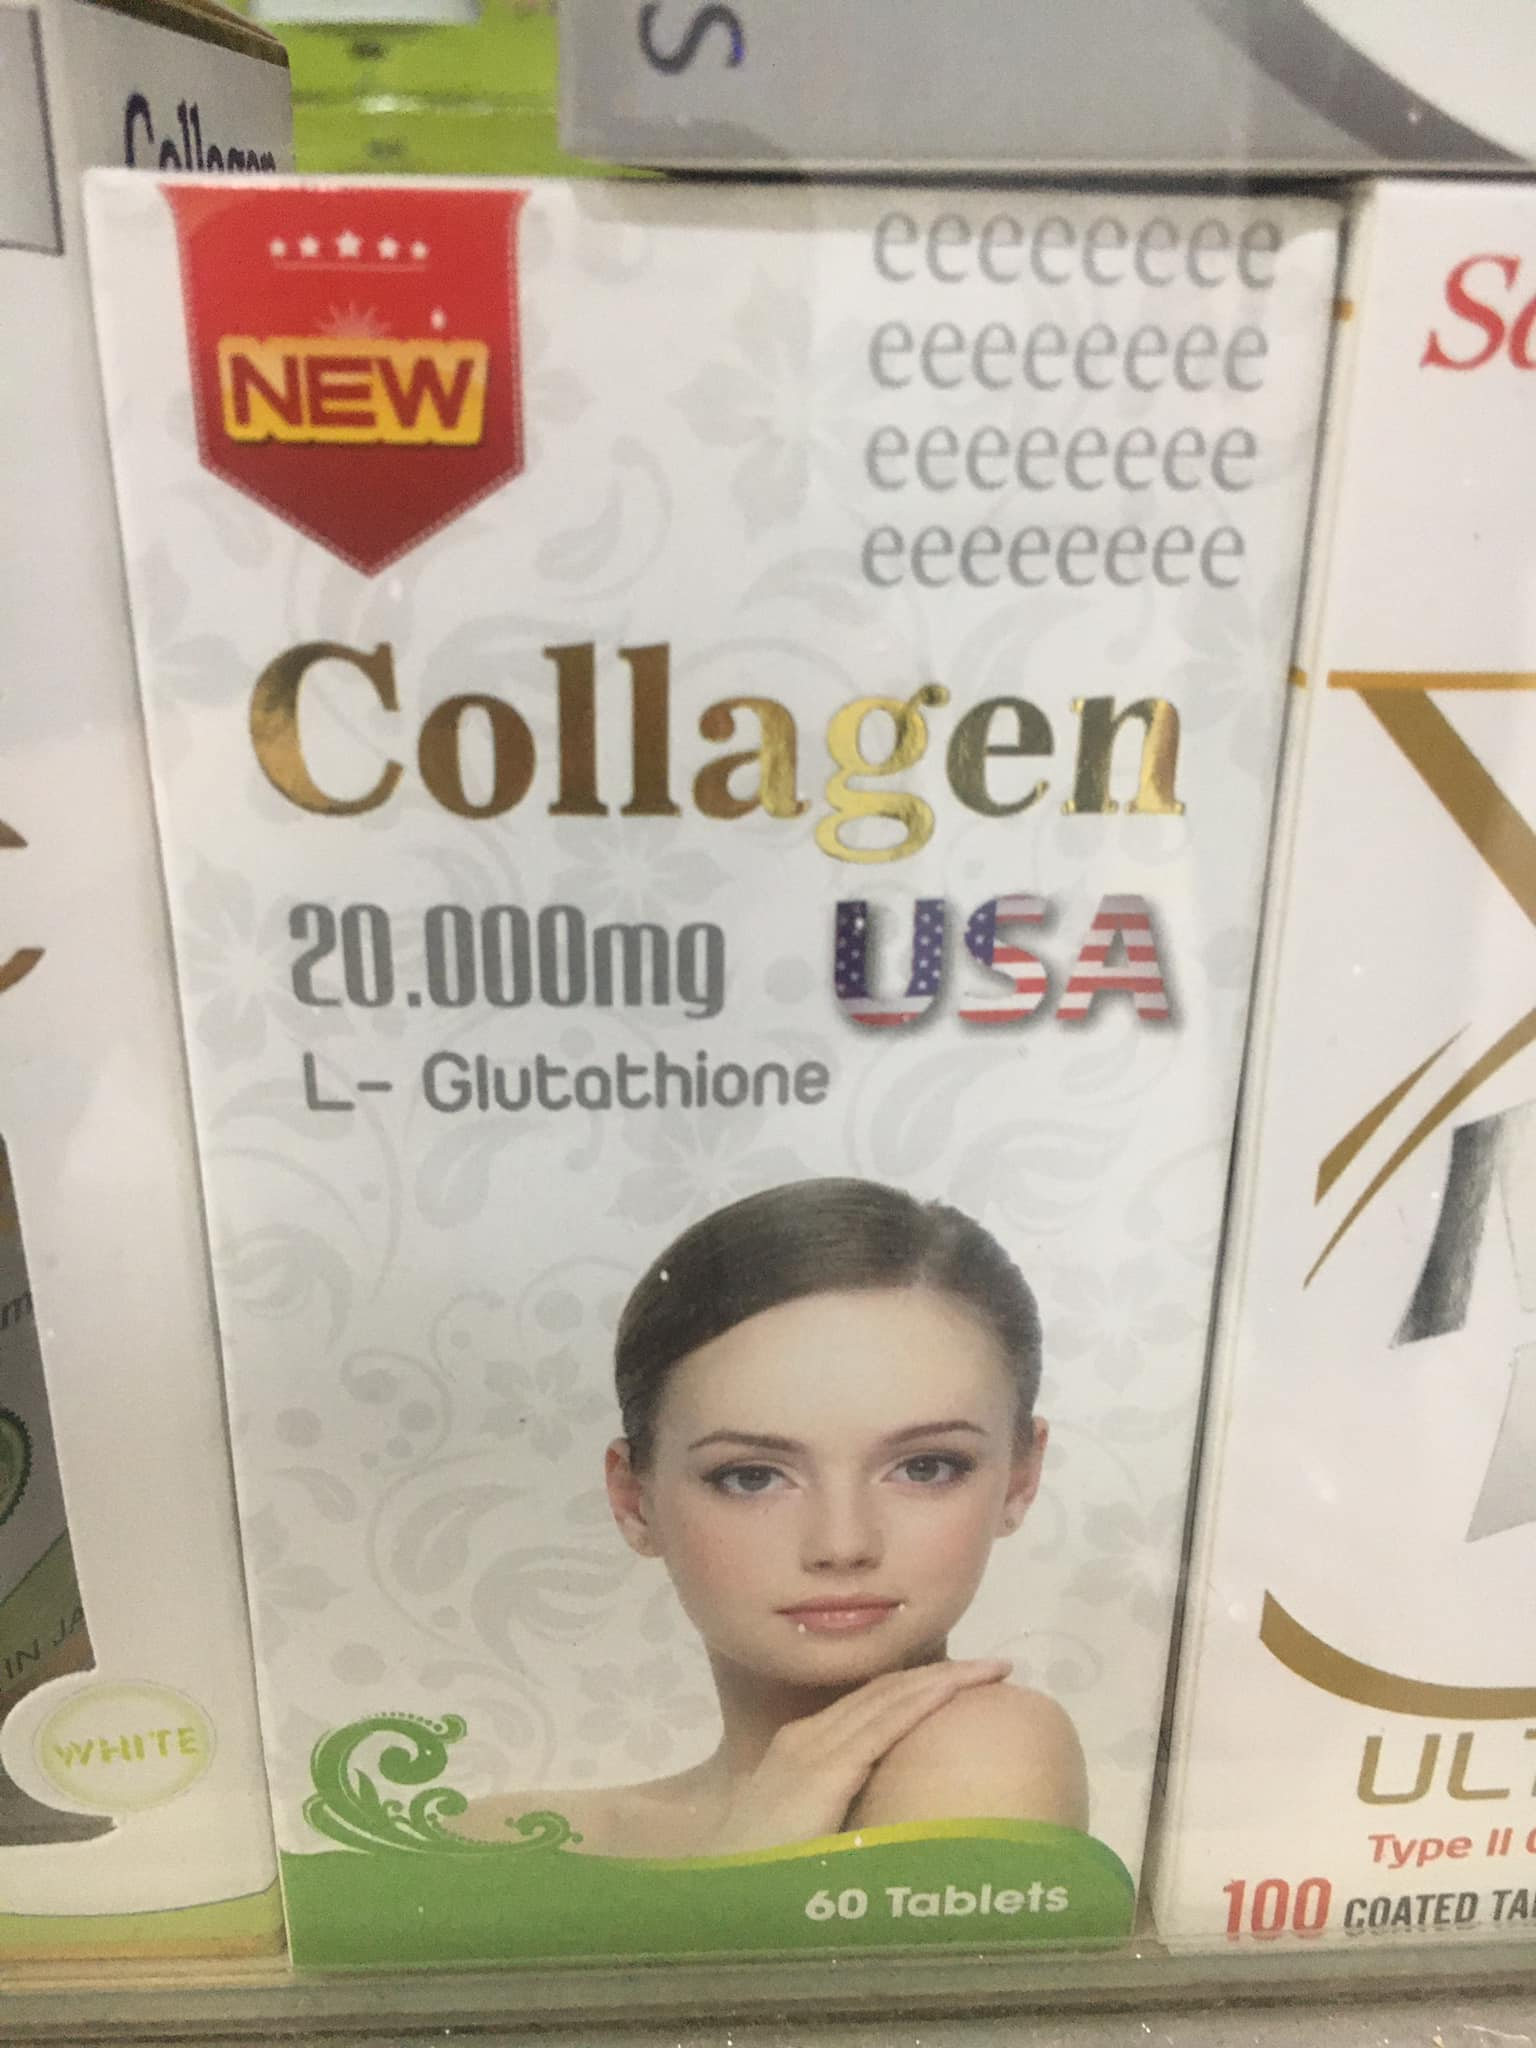 Collagen USA 20.000mg